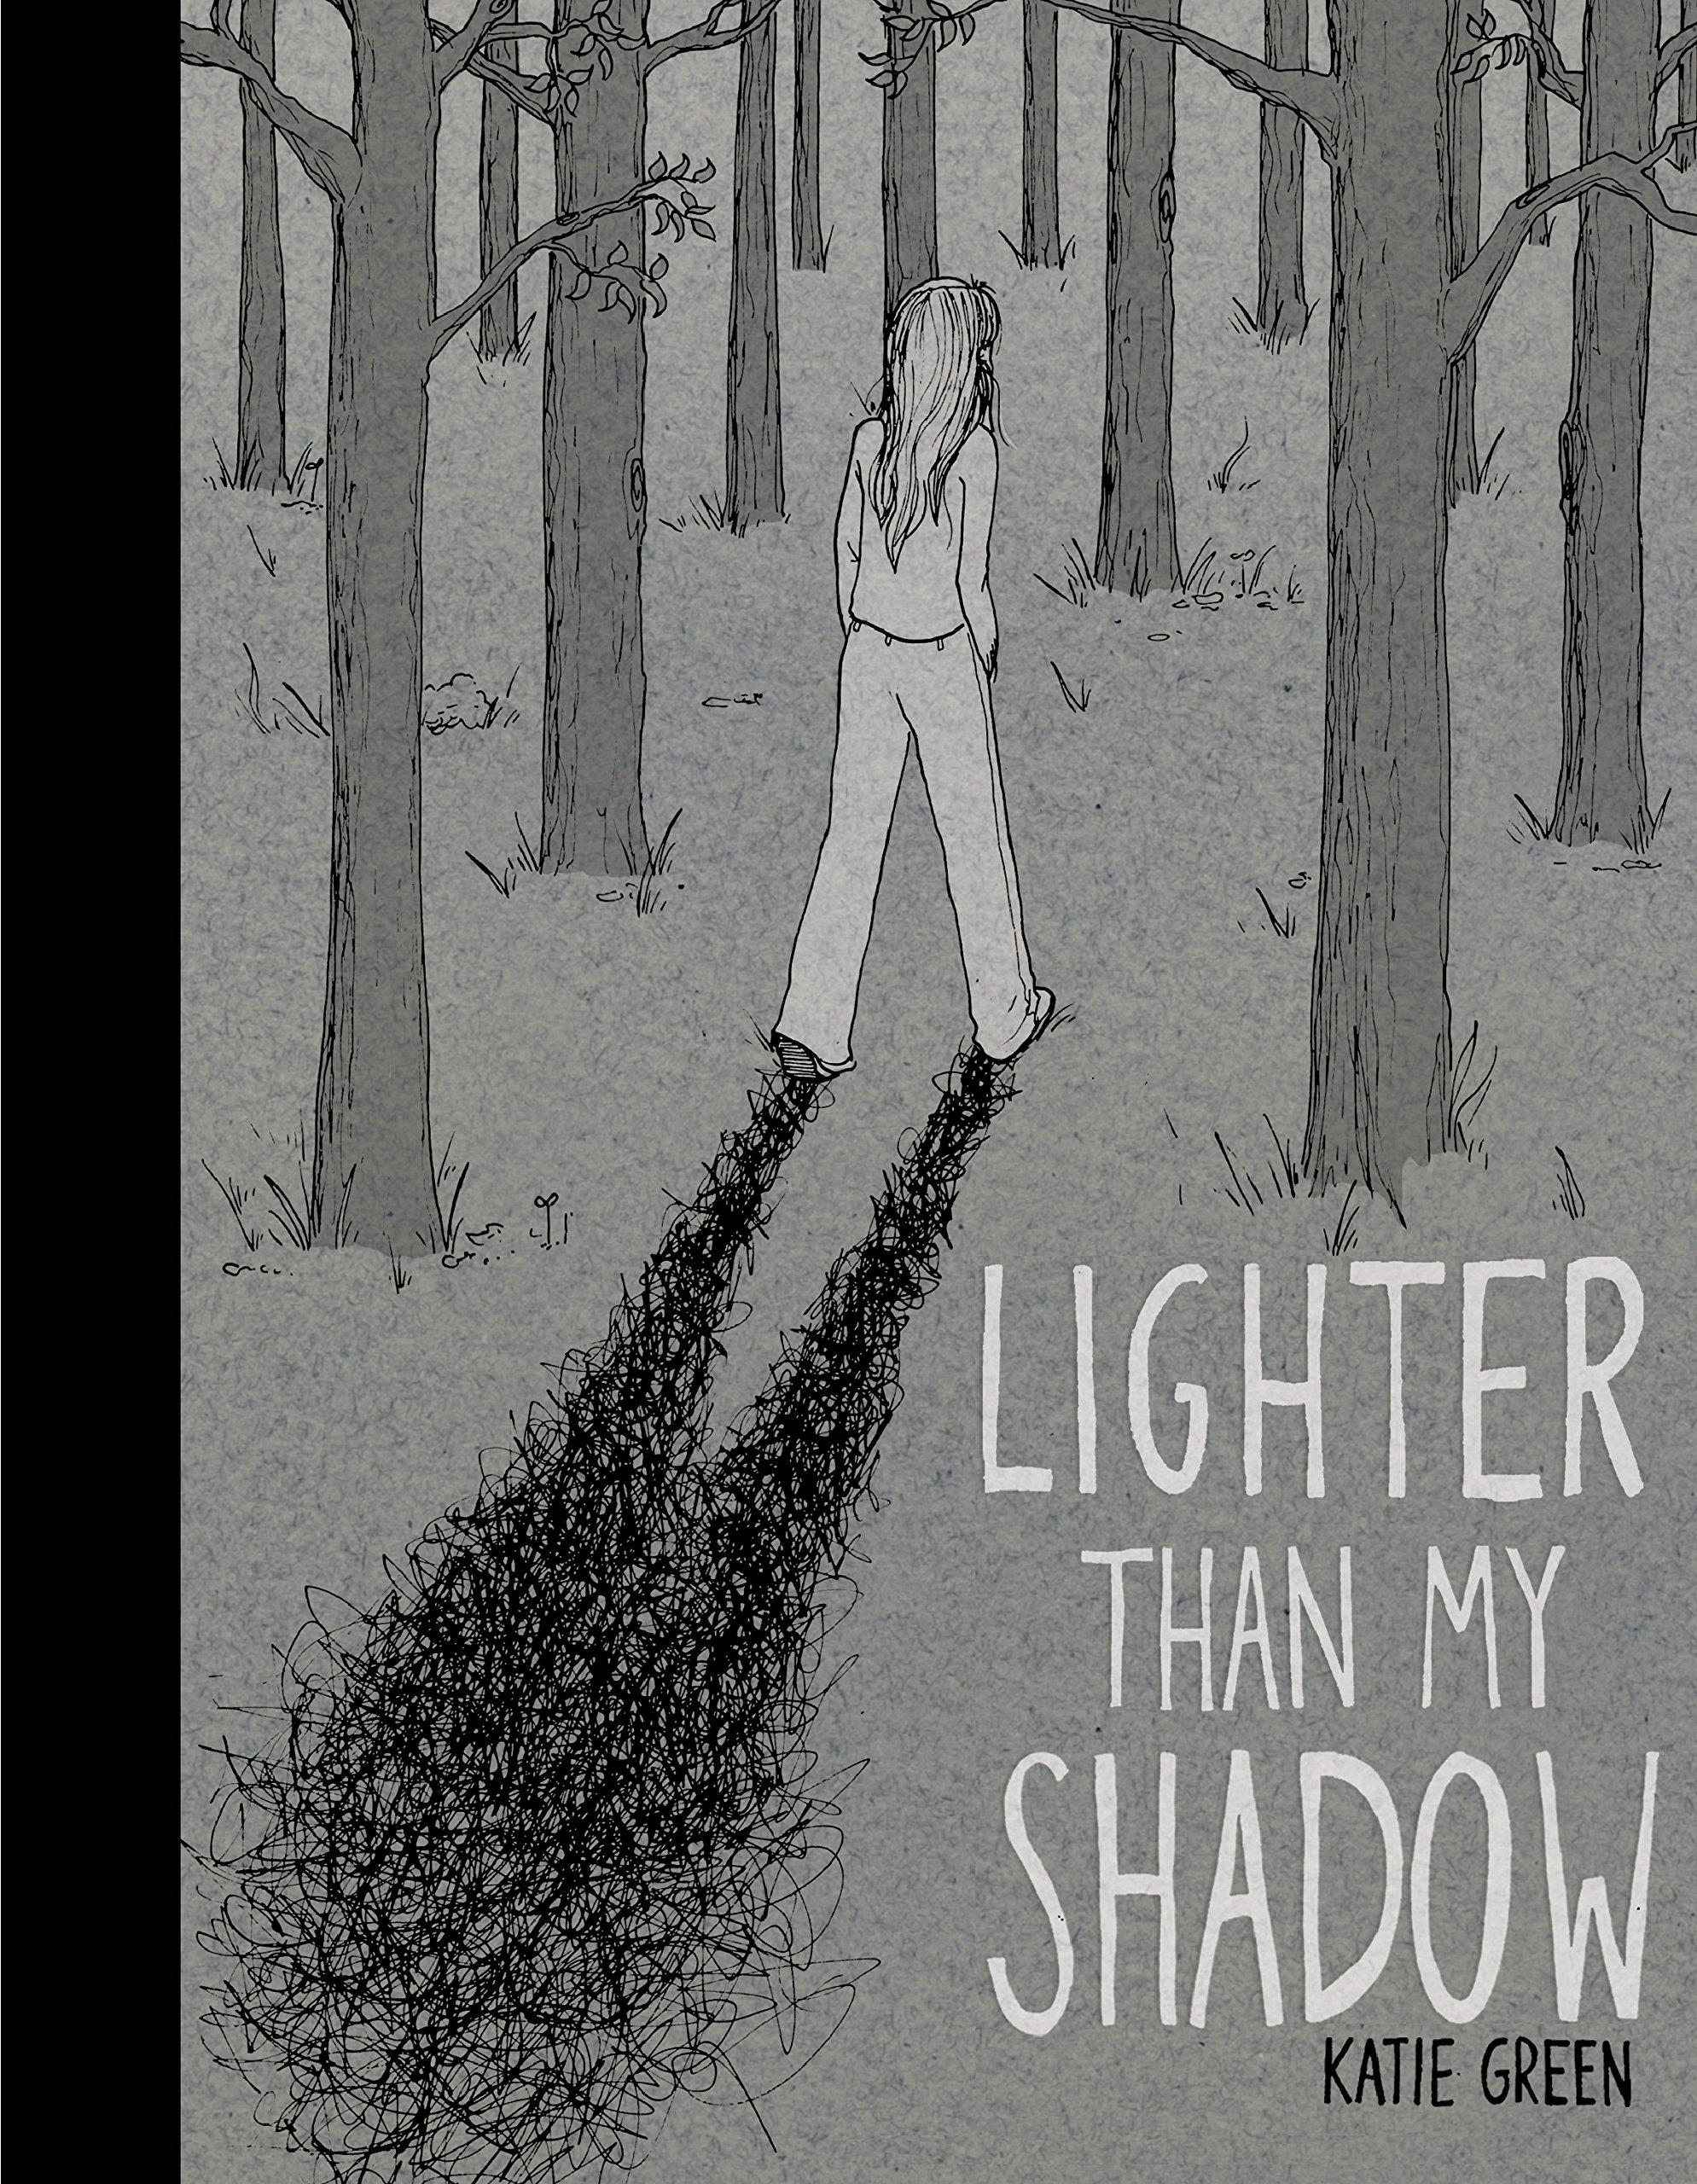 Lighter Than My Shadow, by Katie Green